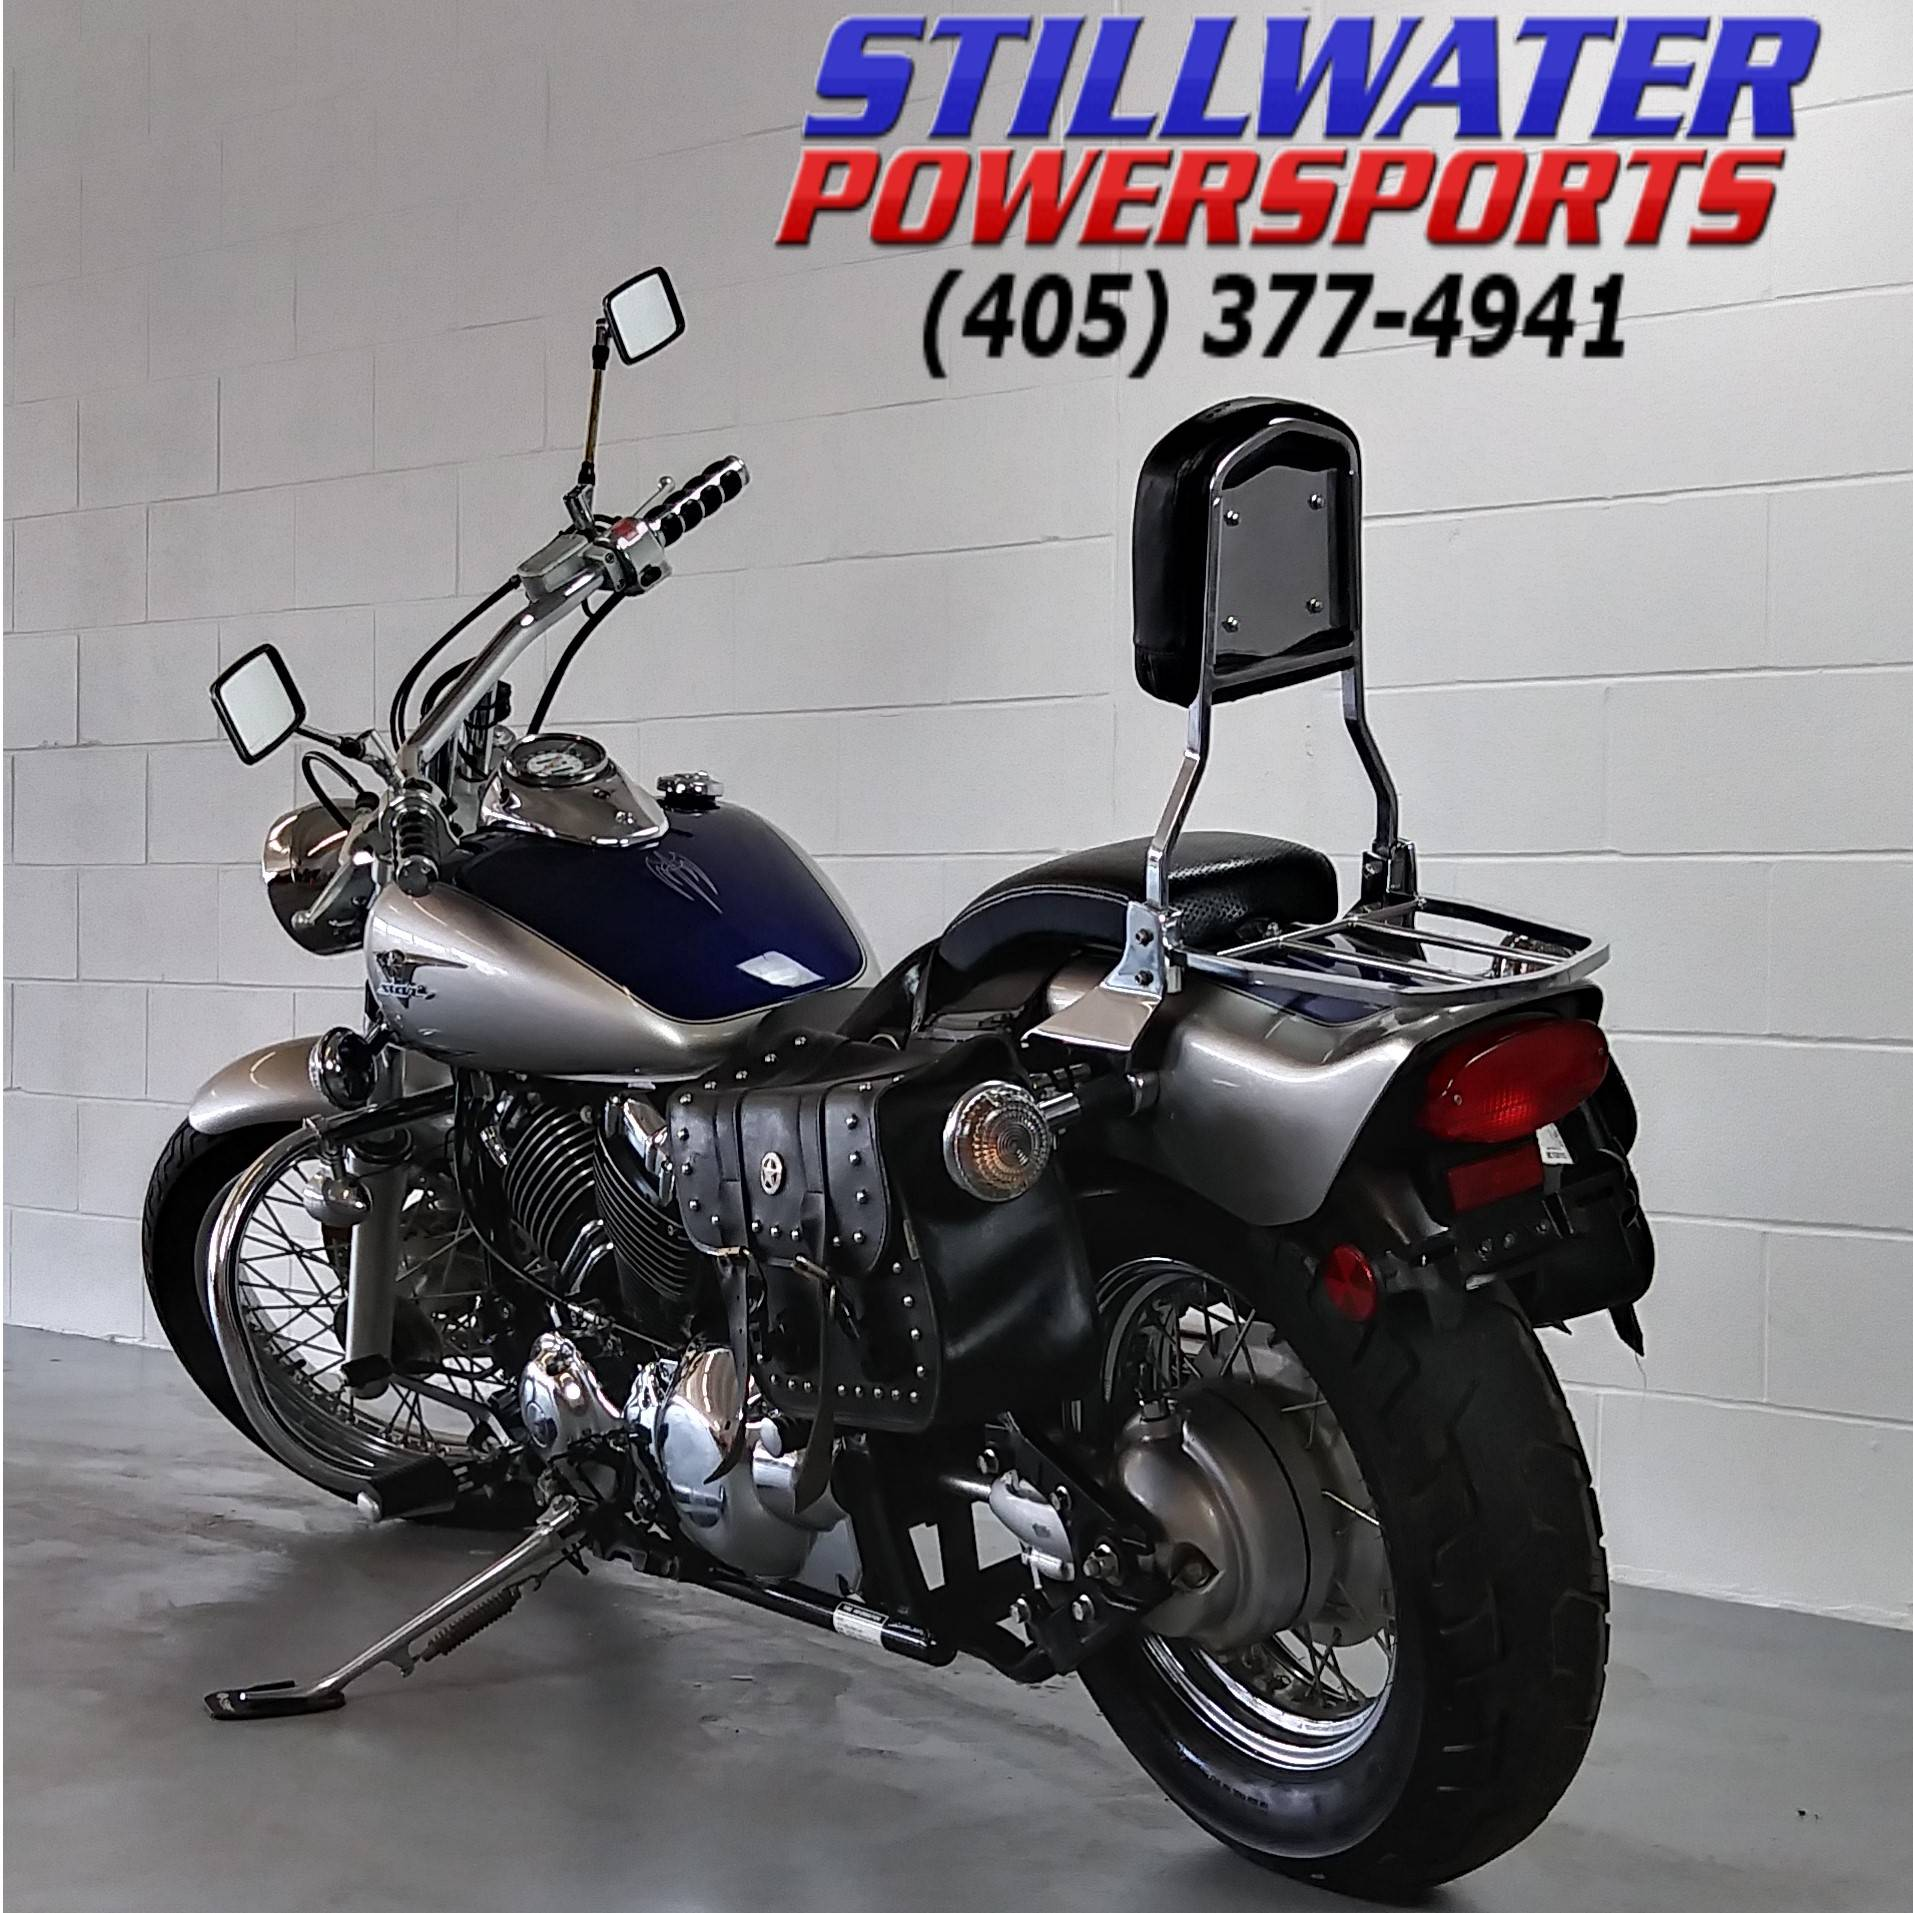 2006 Yamaha V Star® Custom in Stillwater, Oklahoma - Photo 2